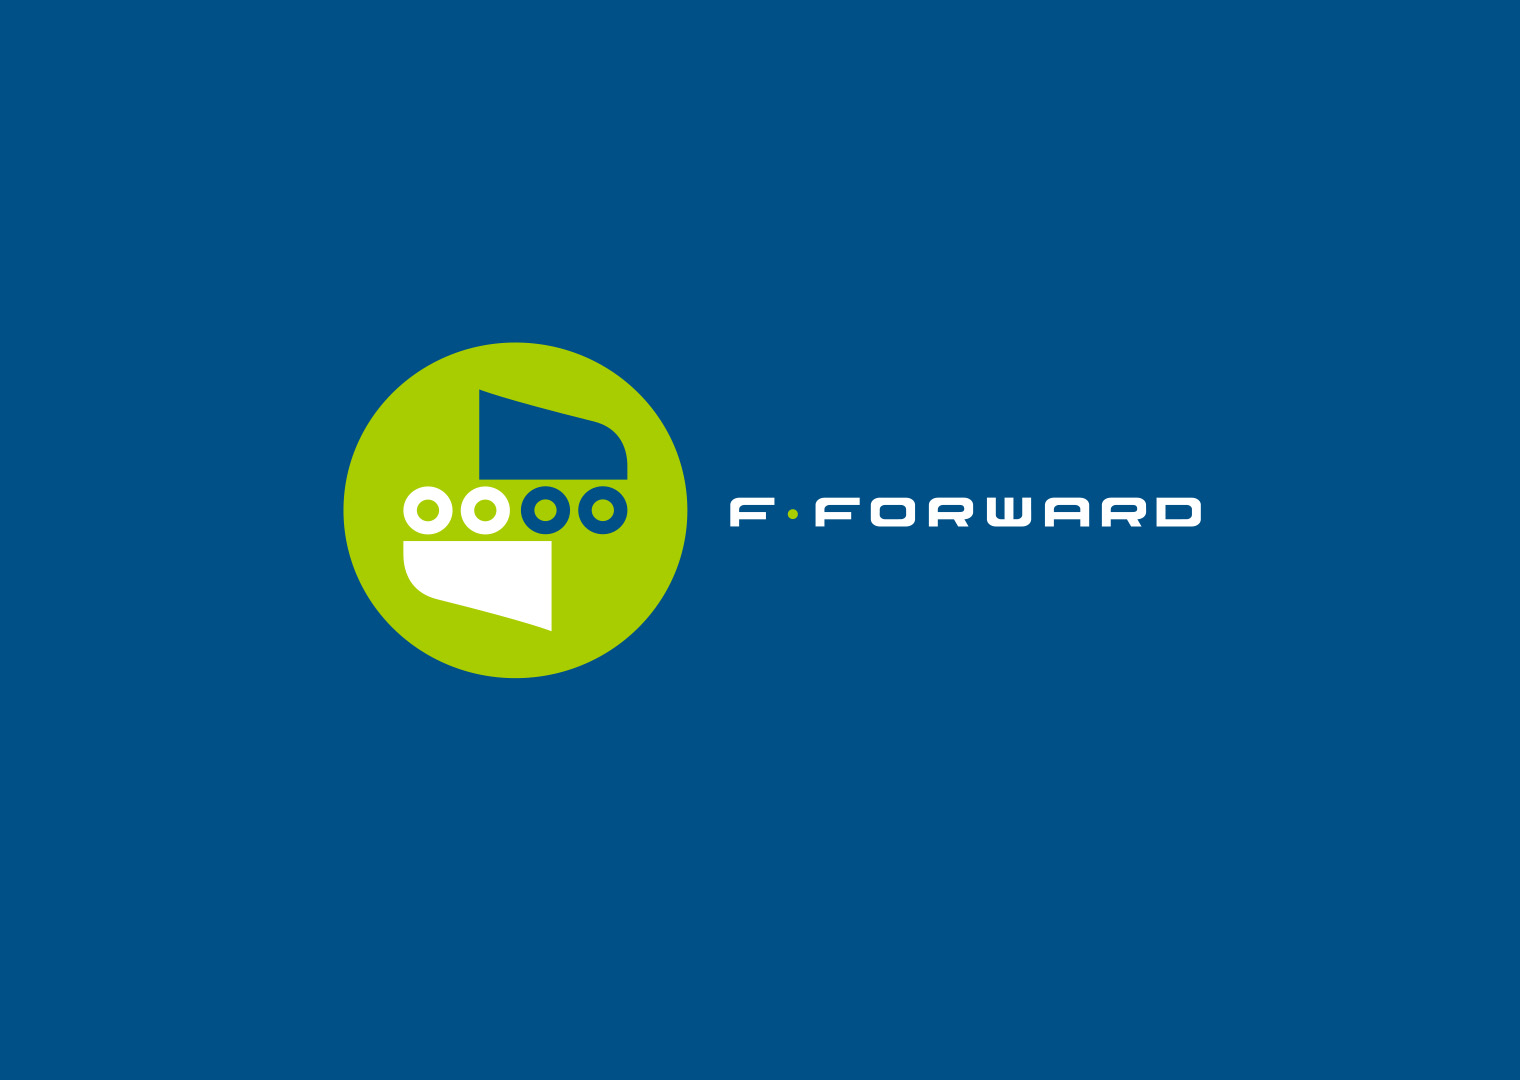 F-forward logo